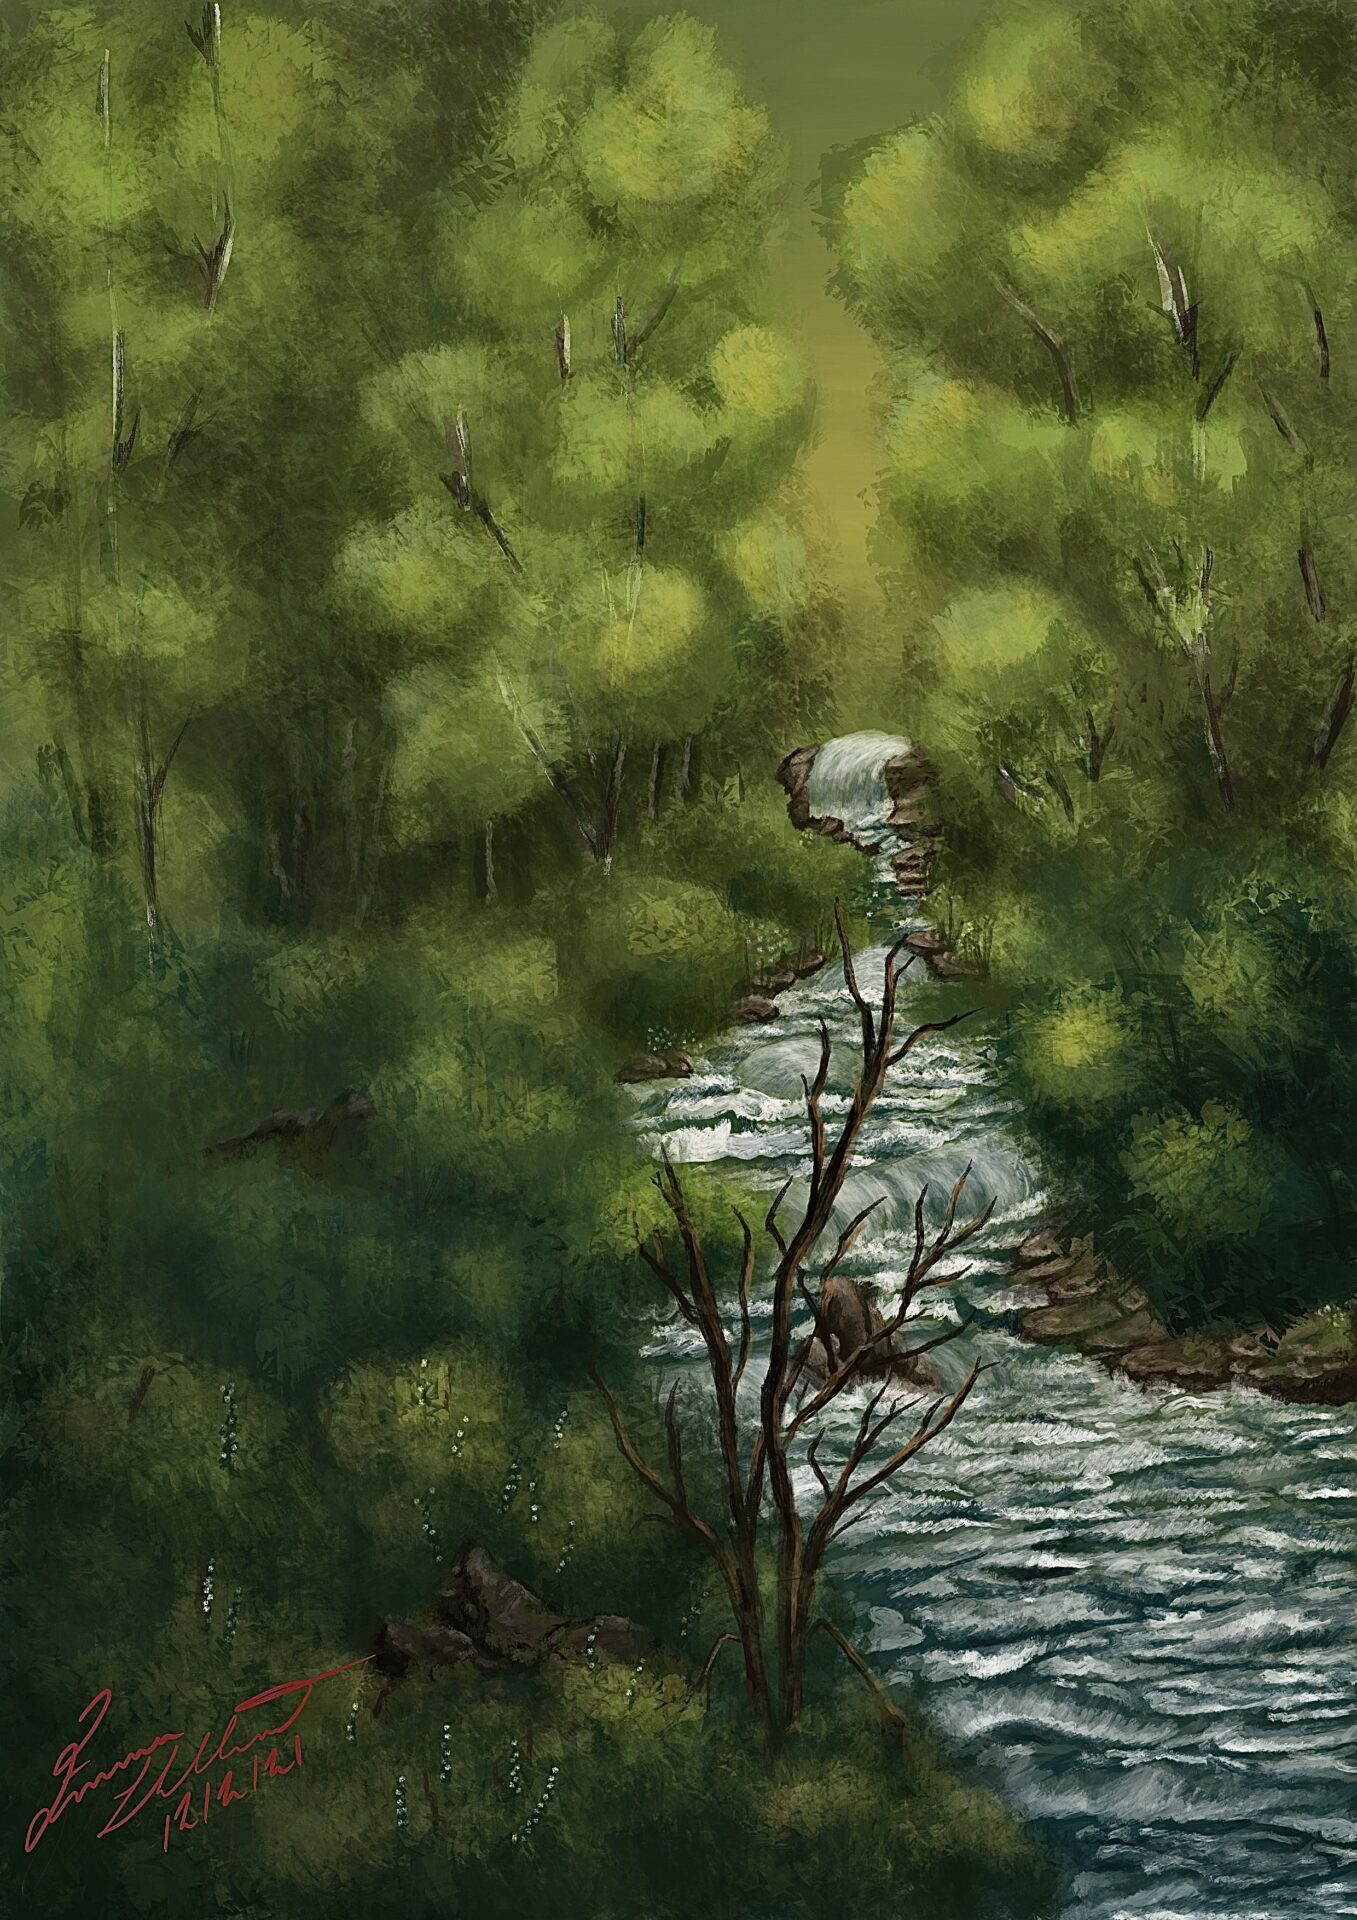 Emma has painted lots of thin, green trees. She has also painted a blue river rushing through the painting.